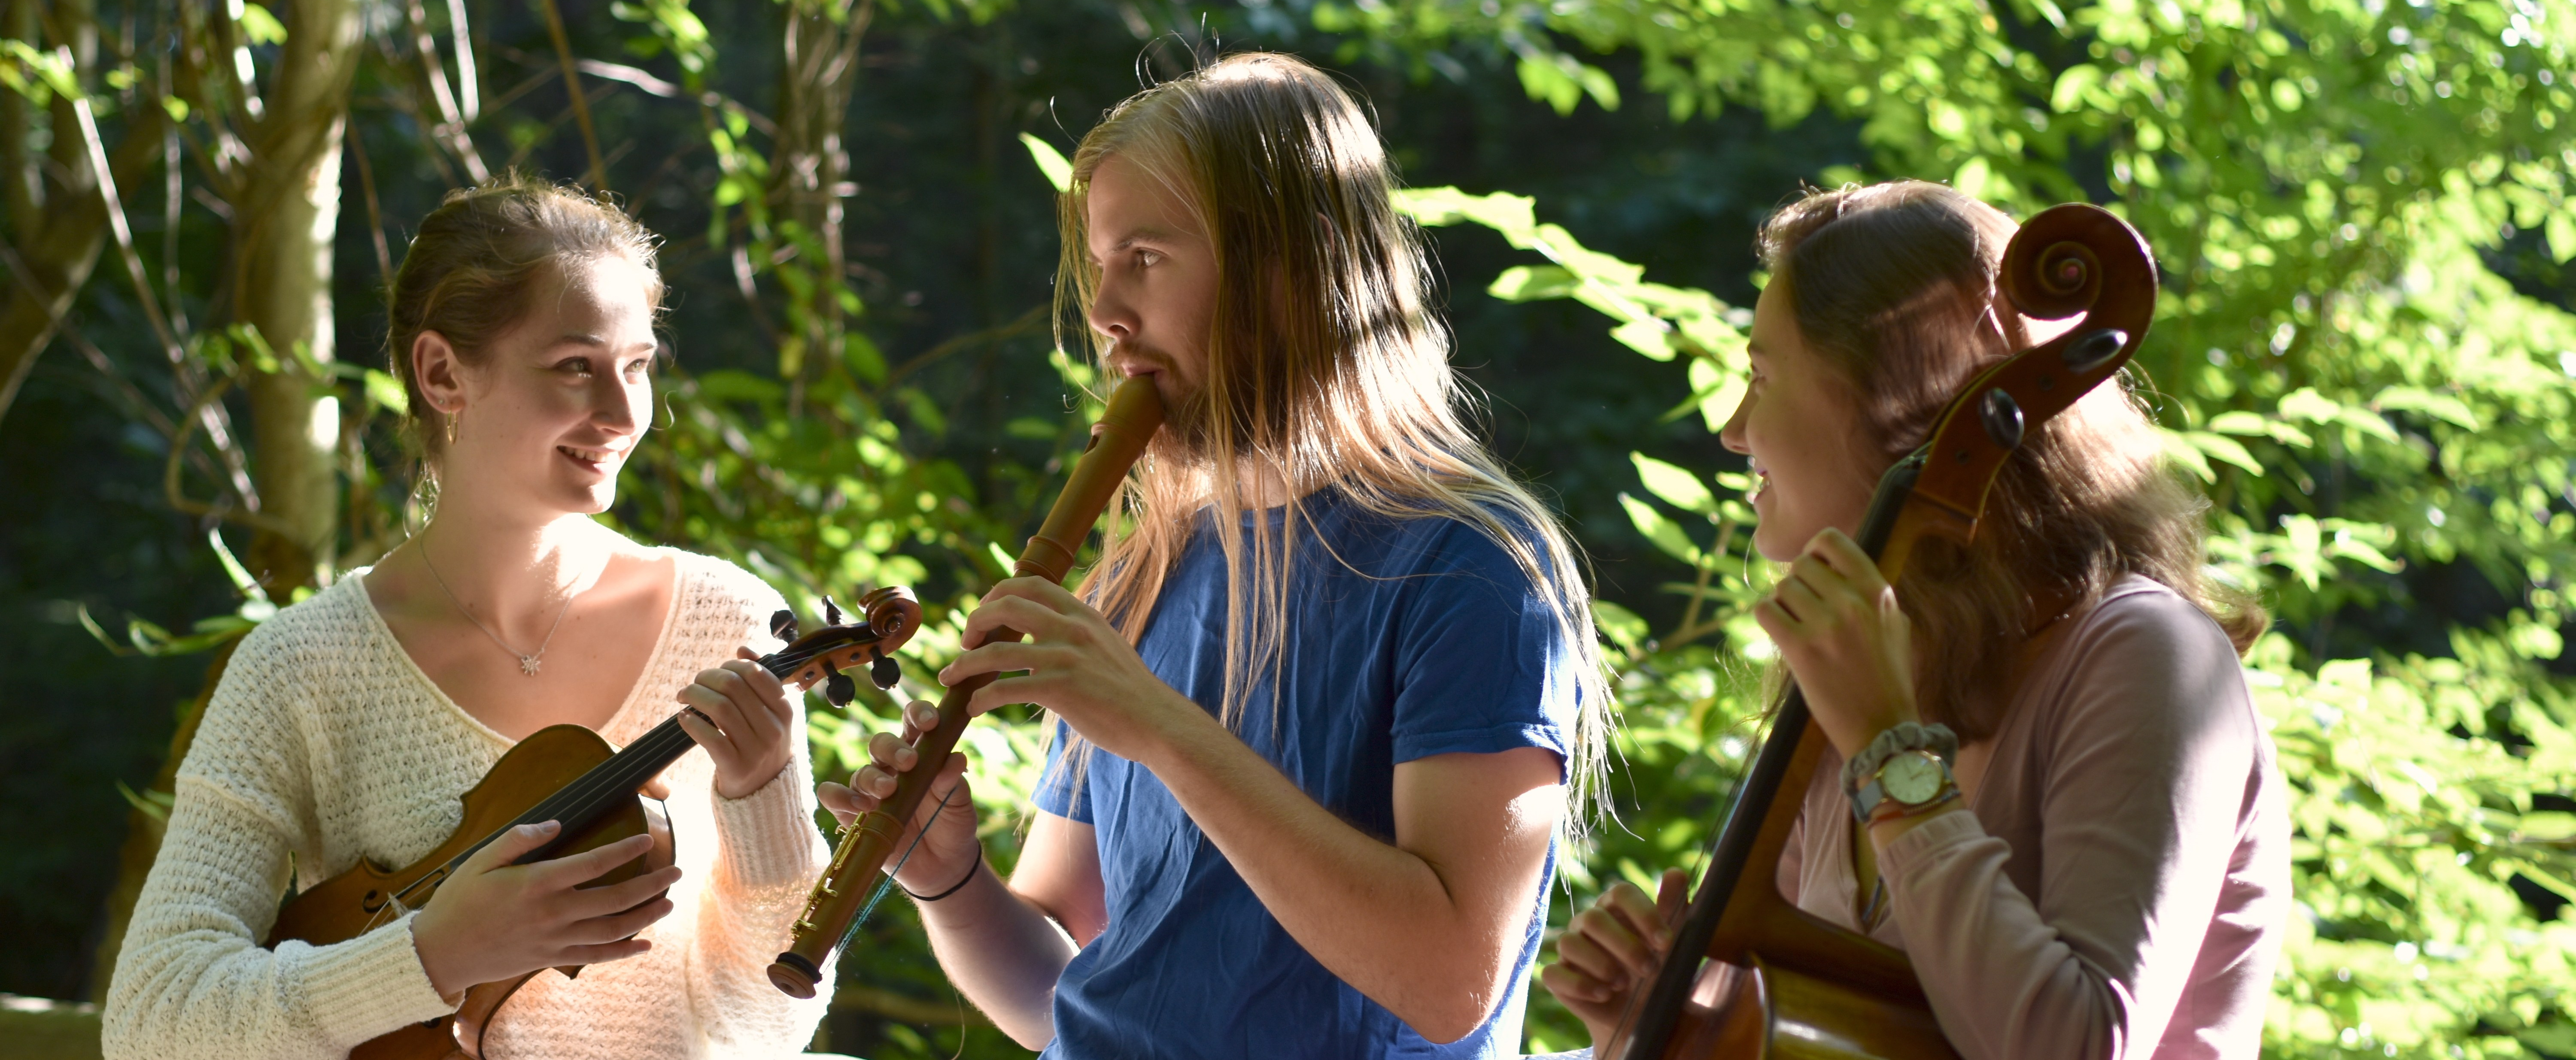 Lampyridæ (Lampyridae) homepage footer photo - The band playing their instruments casually in the woods.